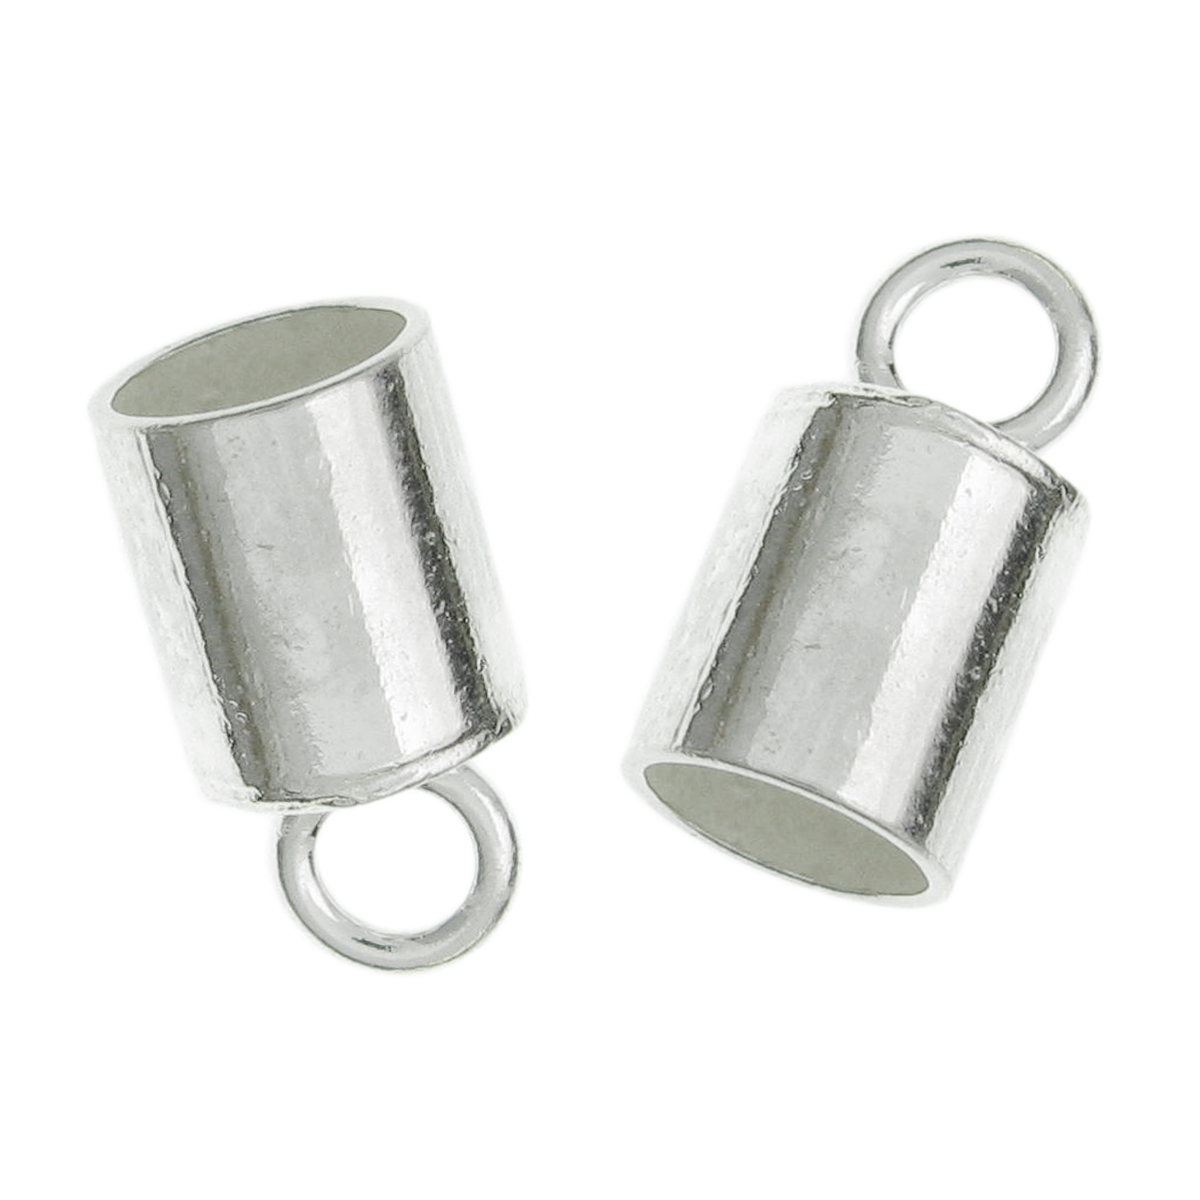 10x Sterling Silver Round End Caps for 4mm Leather Bead Cord